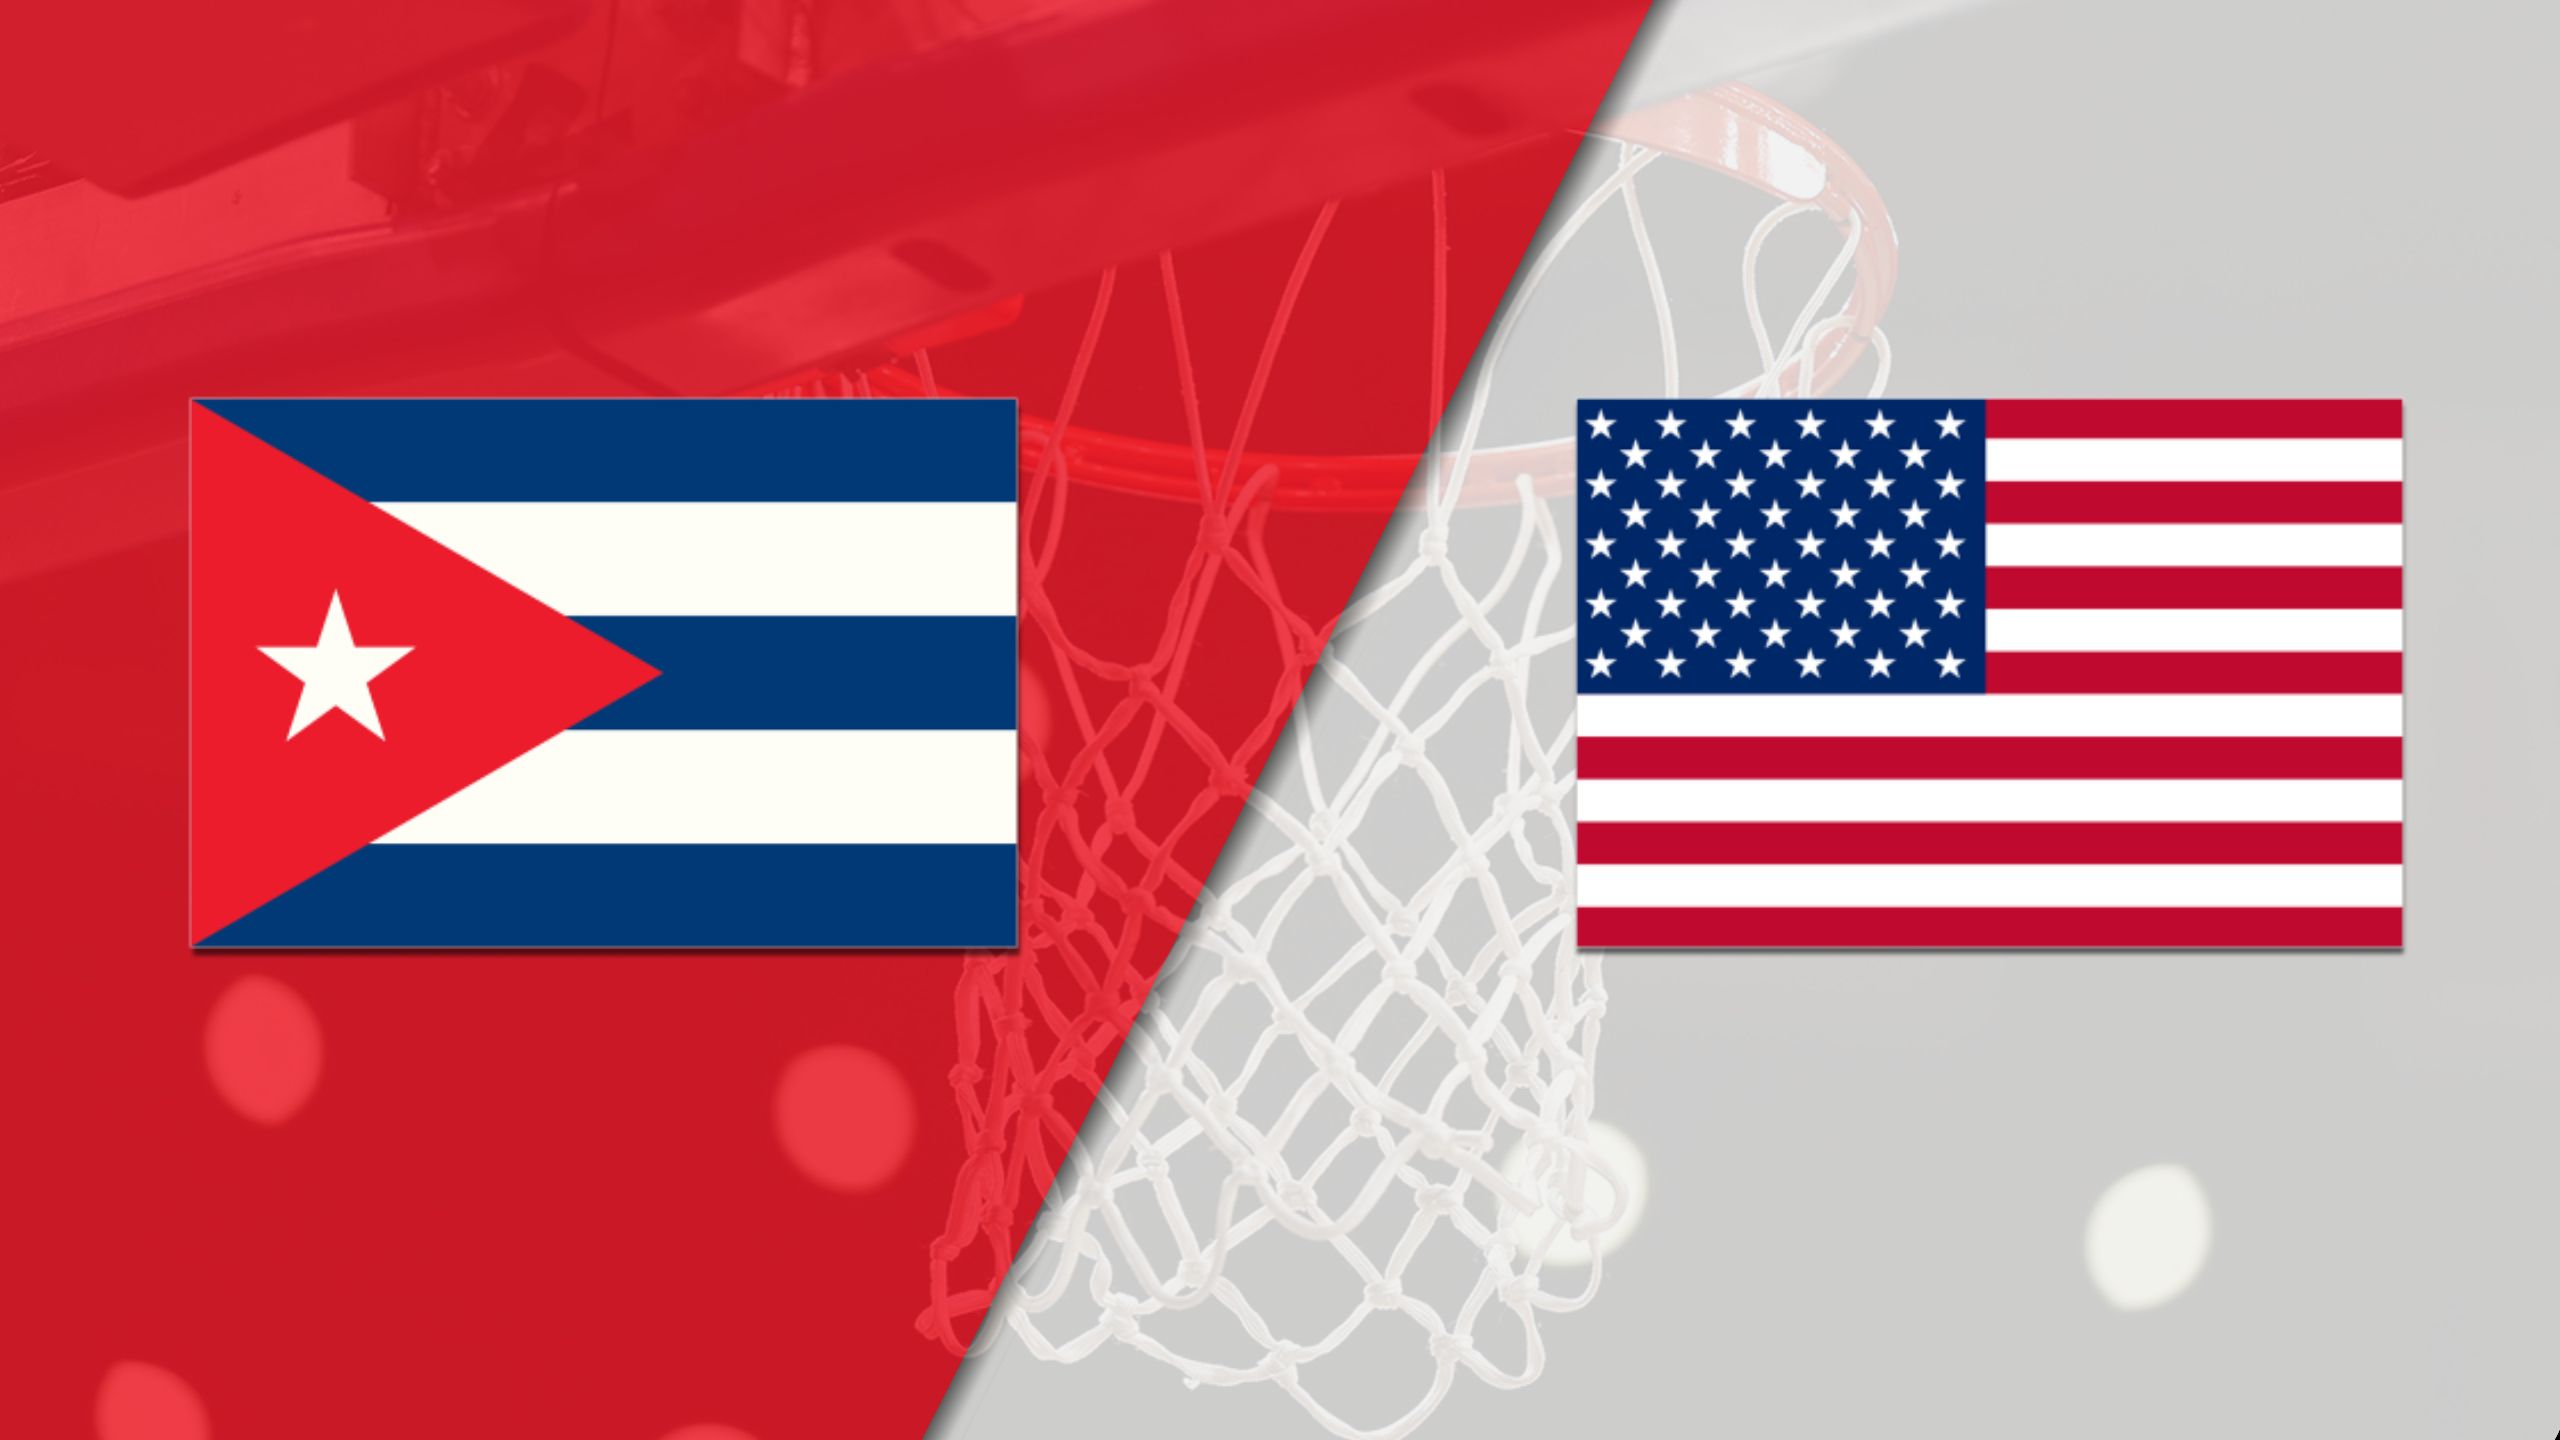 Cuba vs. USA (FIBA World Cup 2019 Qualifier)